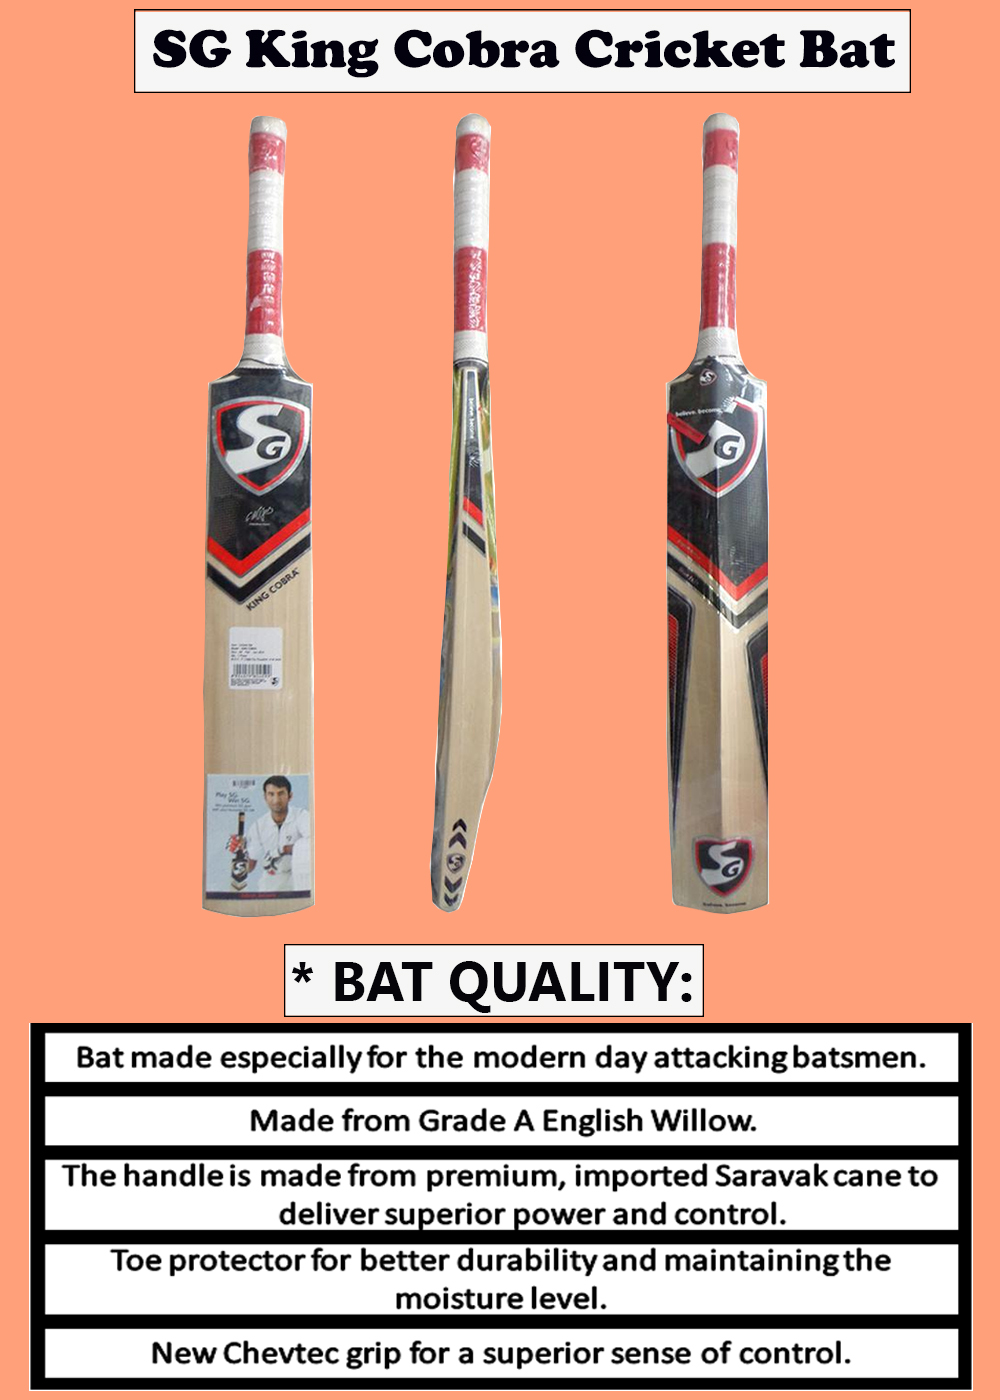 SG King Cobra Cricket Bat_6